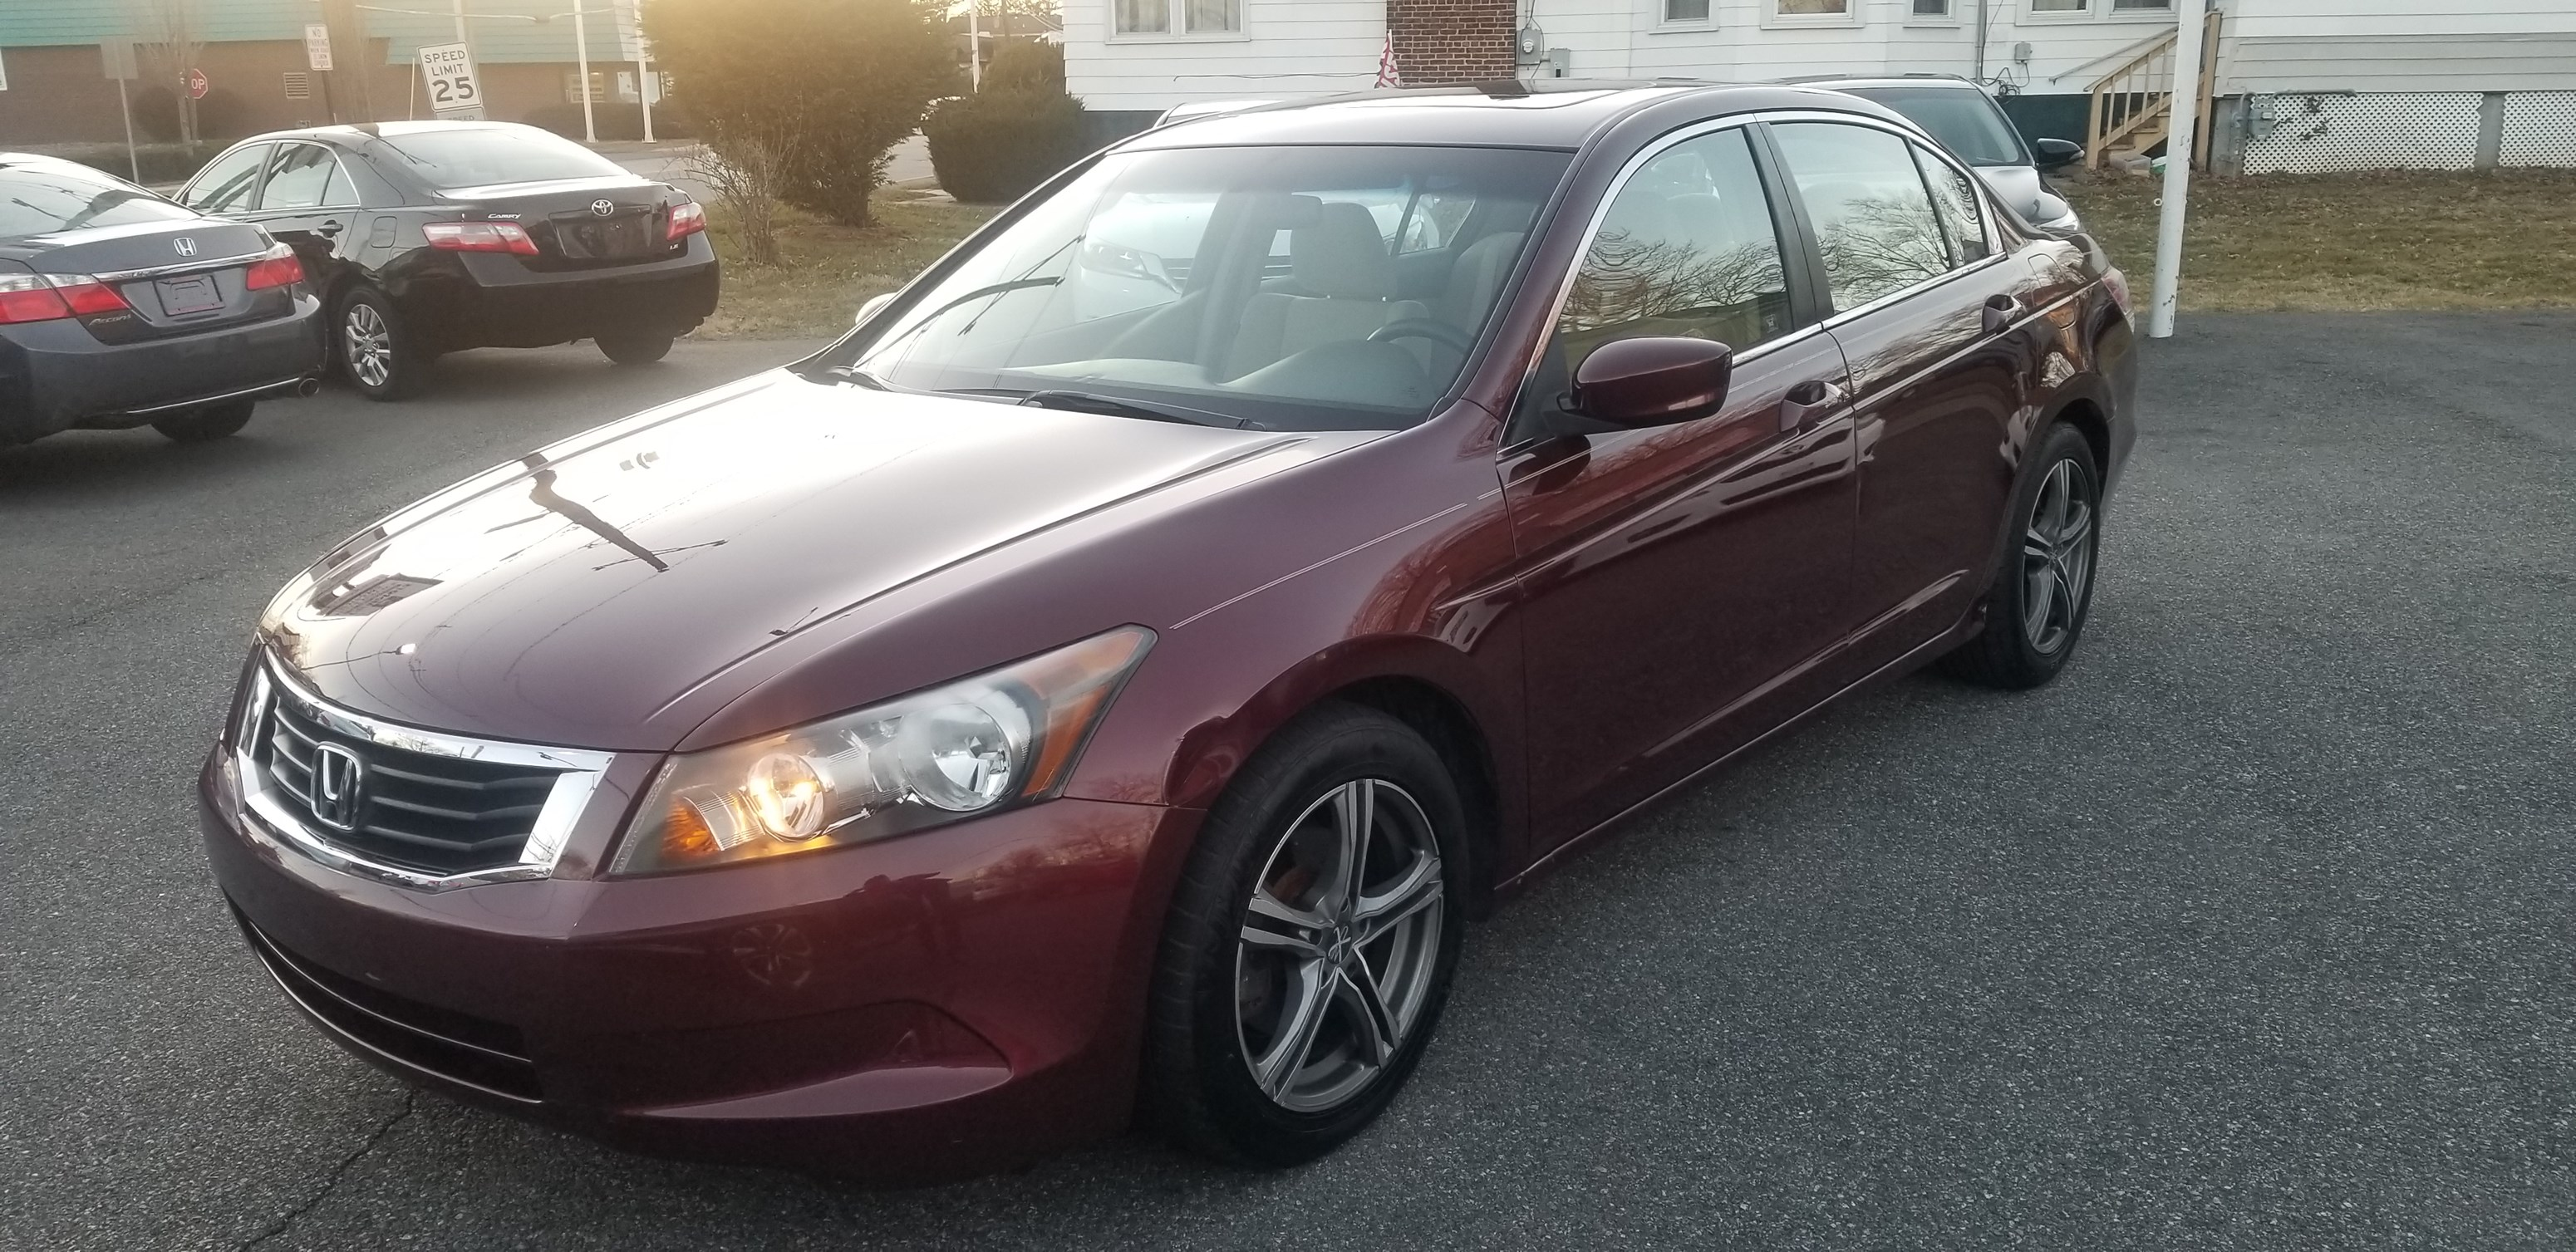 Carfax Used Cars Under 10000 Best Of 2010 Honda Accord Ex 2 4l 4 Cylinder Clean Title Clean Carfax